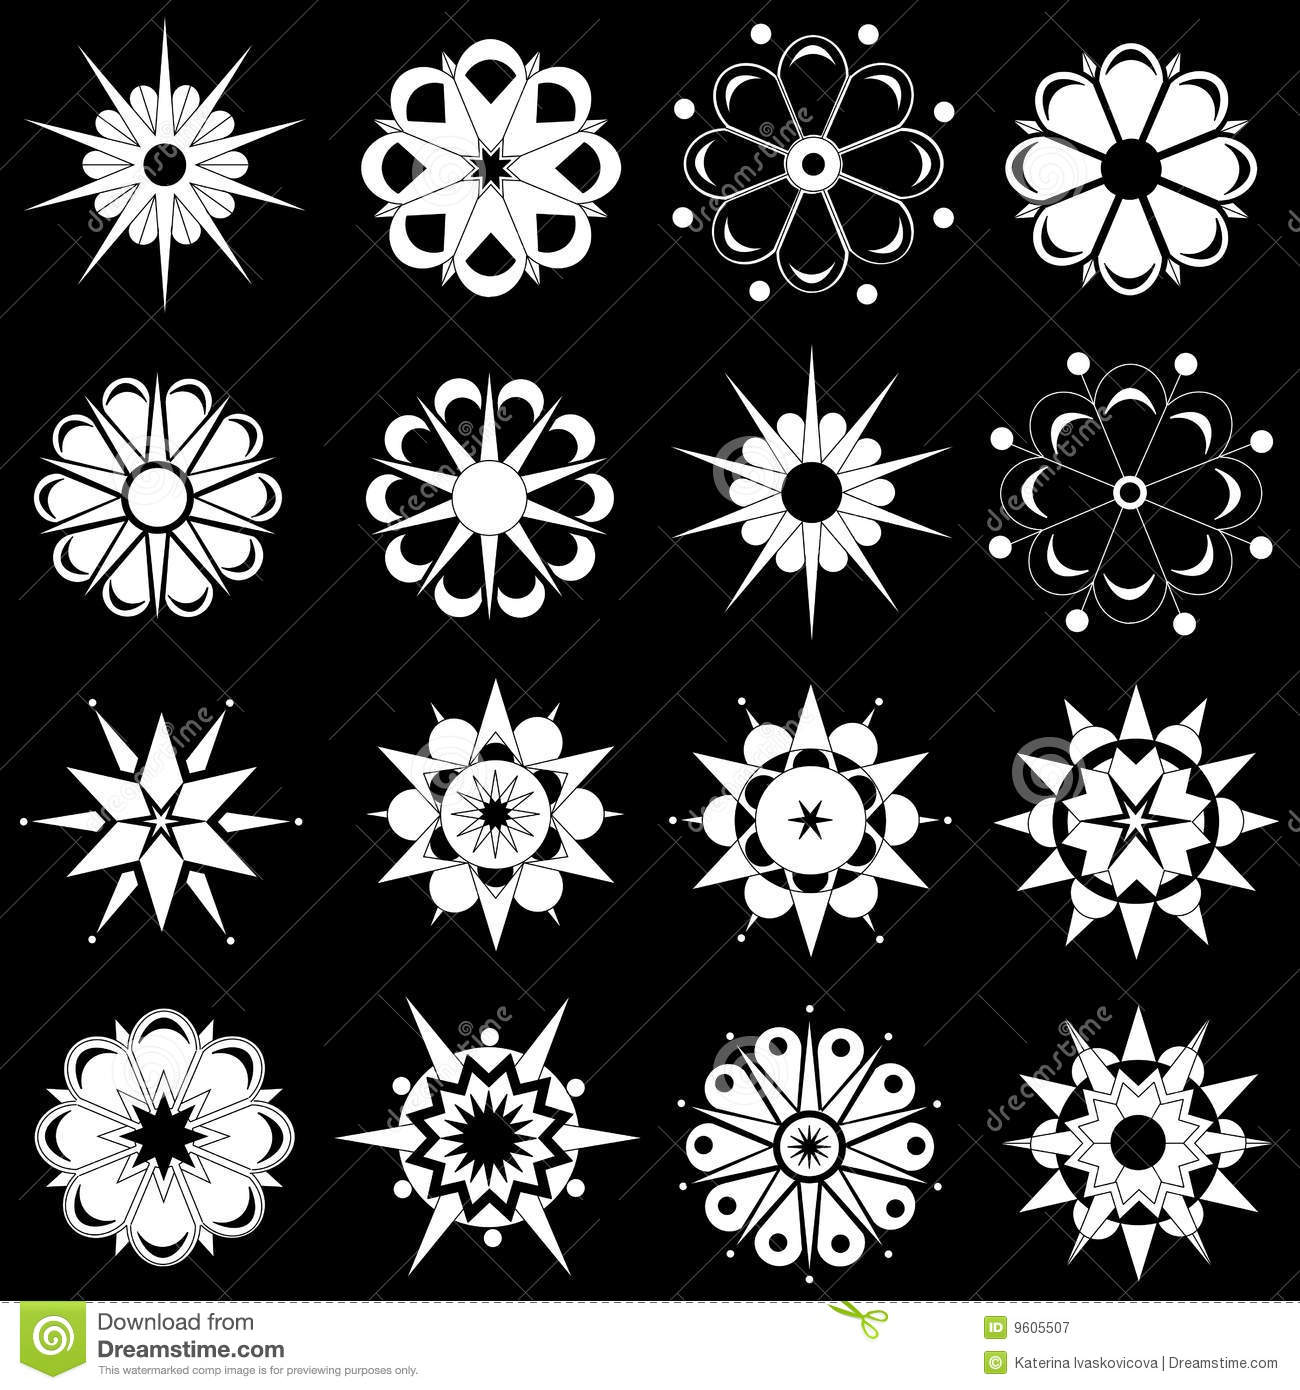 Six Black Flower Design Stock Images: Variety Of Black And White Flower Designs Stock Vector